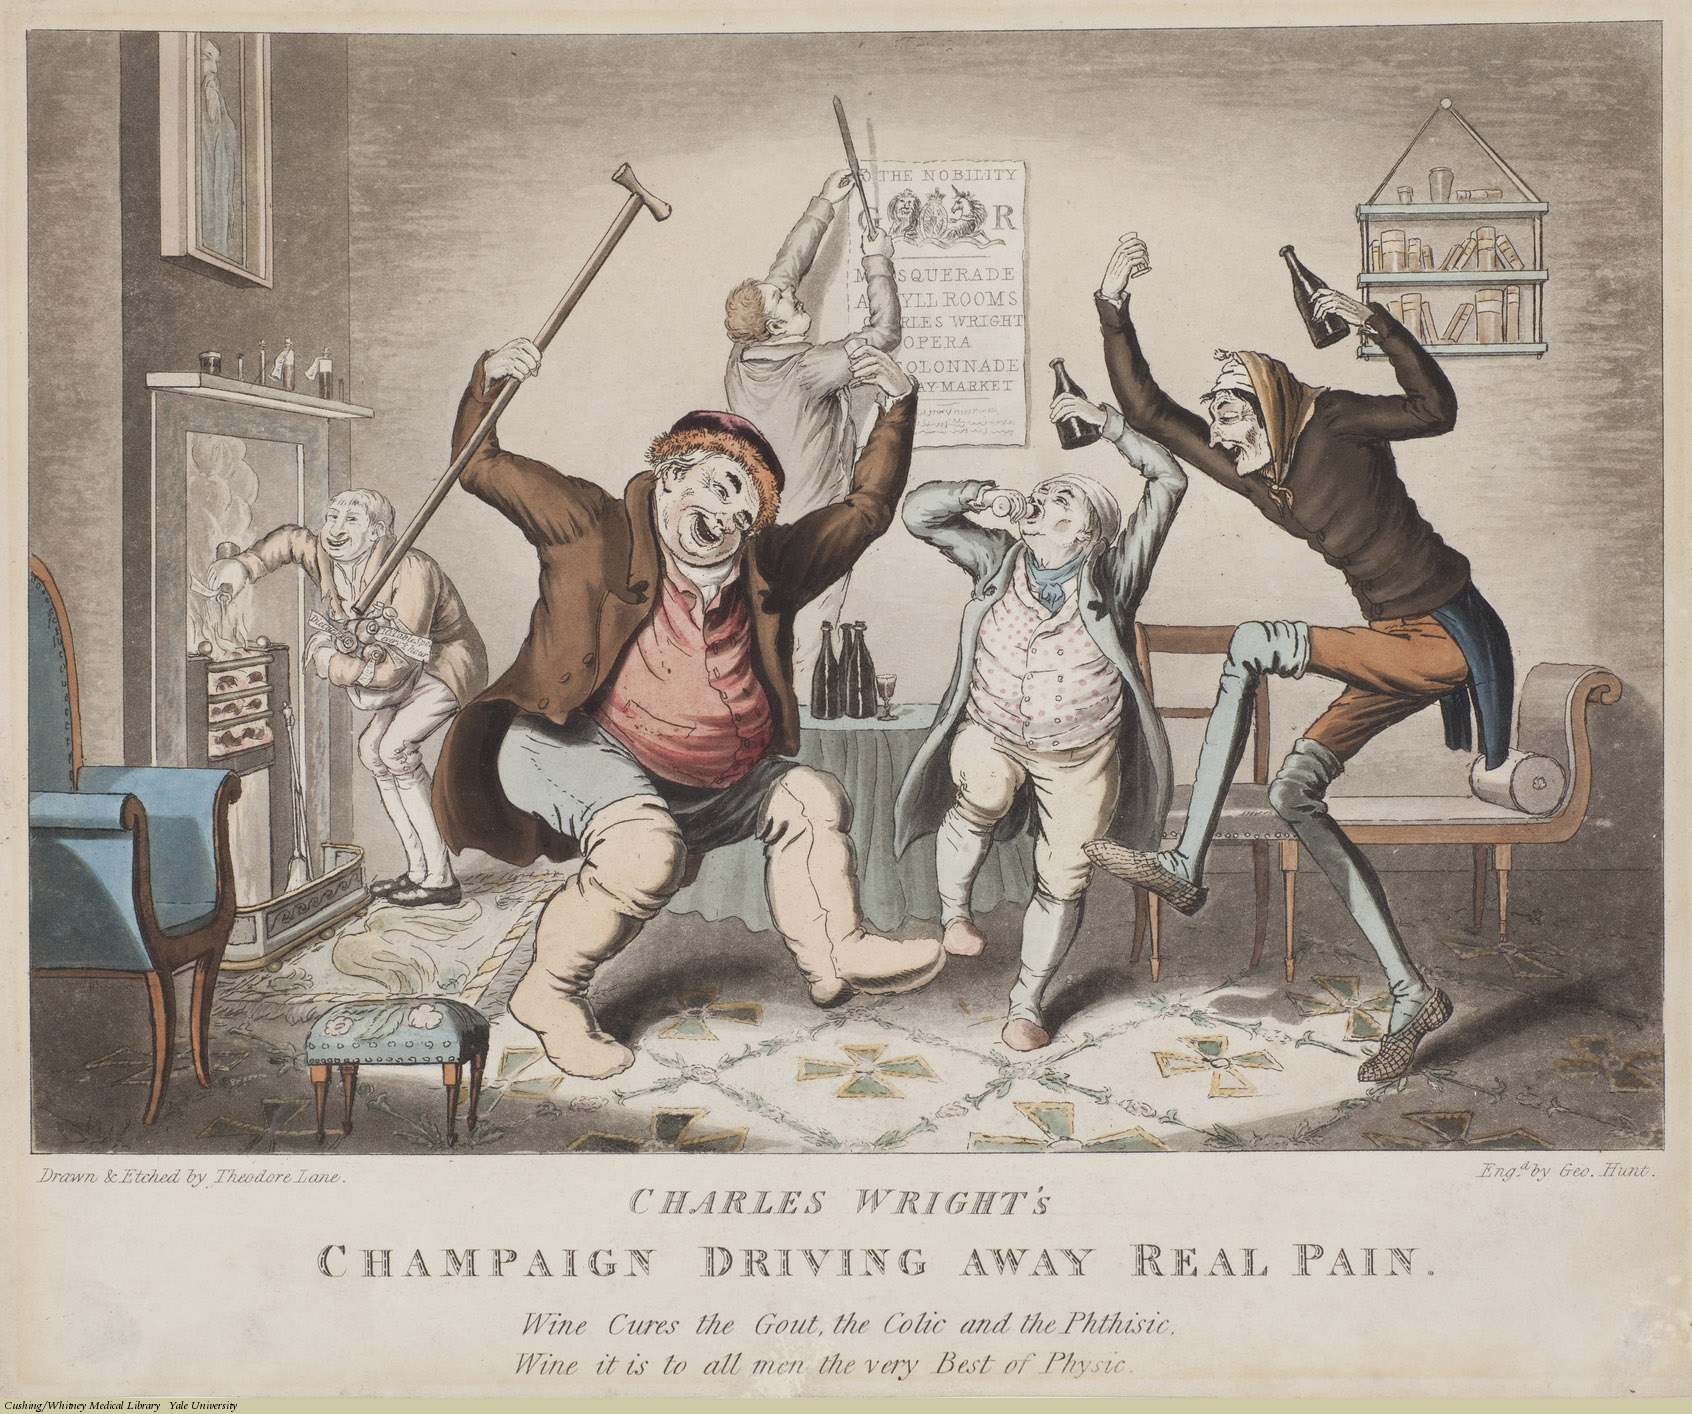 Charles Wright's Champaign Driving Away Real Pain. Theodore Lane, Aquatint coloured, ca. 1824-26. Inscription: Wine Cures the Gout, the Colic and the Phthisic, Wine it is to all men the very Best of Physic. Subject: Charles Wright, Alcoholic Beverages, Wine, Gout, Cholic, Asthma.